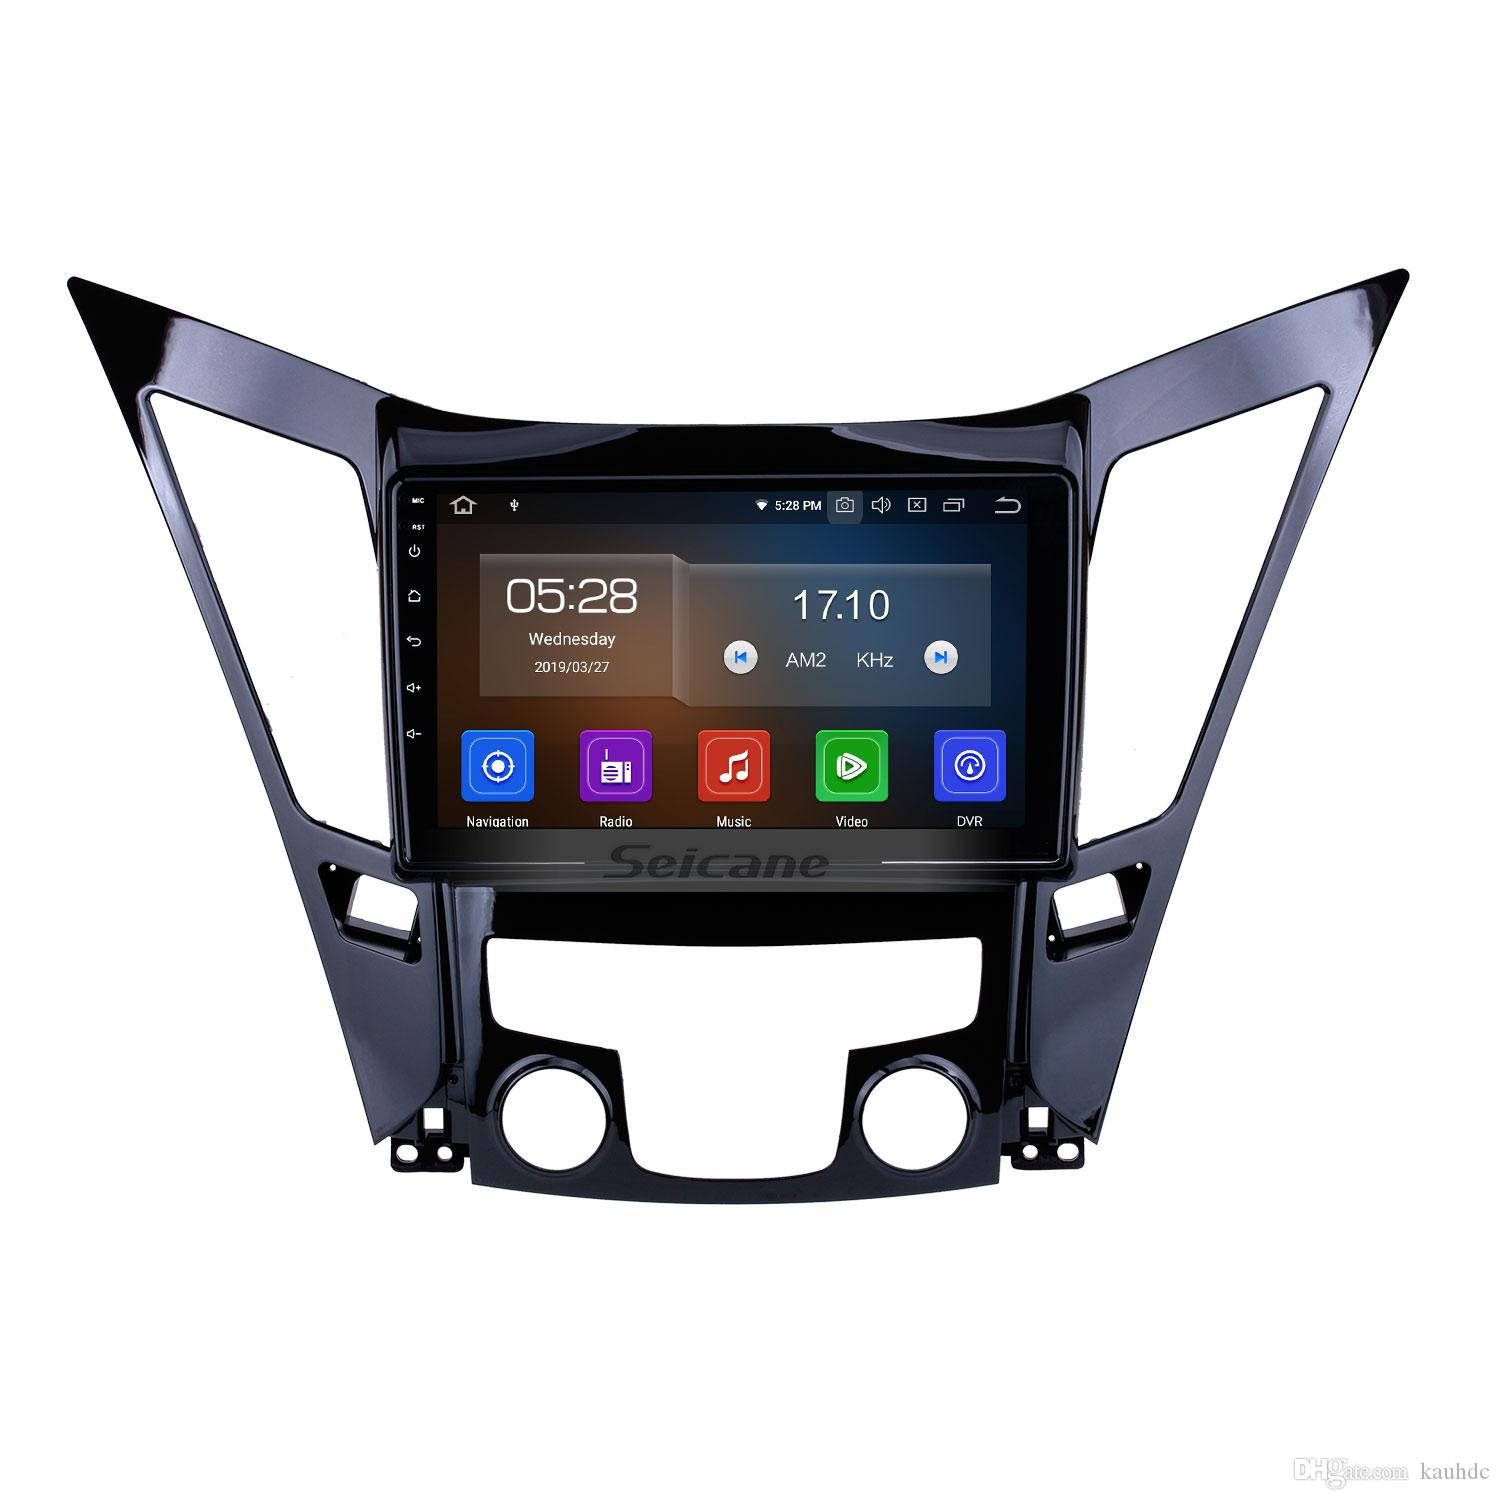 9 Inch Android 9.0 Touch Screen Car GPS Navigation system For 2011-2015 HYUNDAI Sonata i40 i45 with Bluetooth WiFi AUX USB support Car dvd